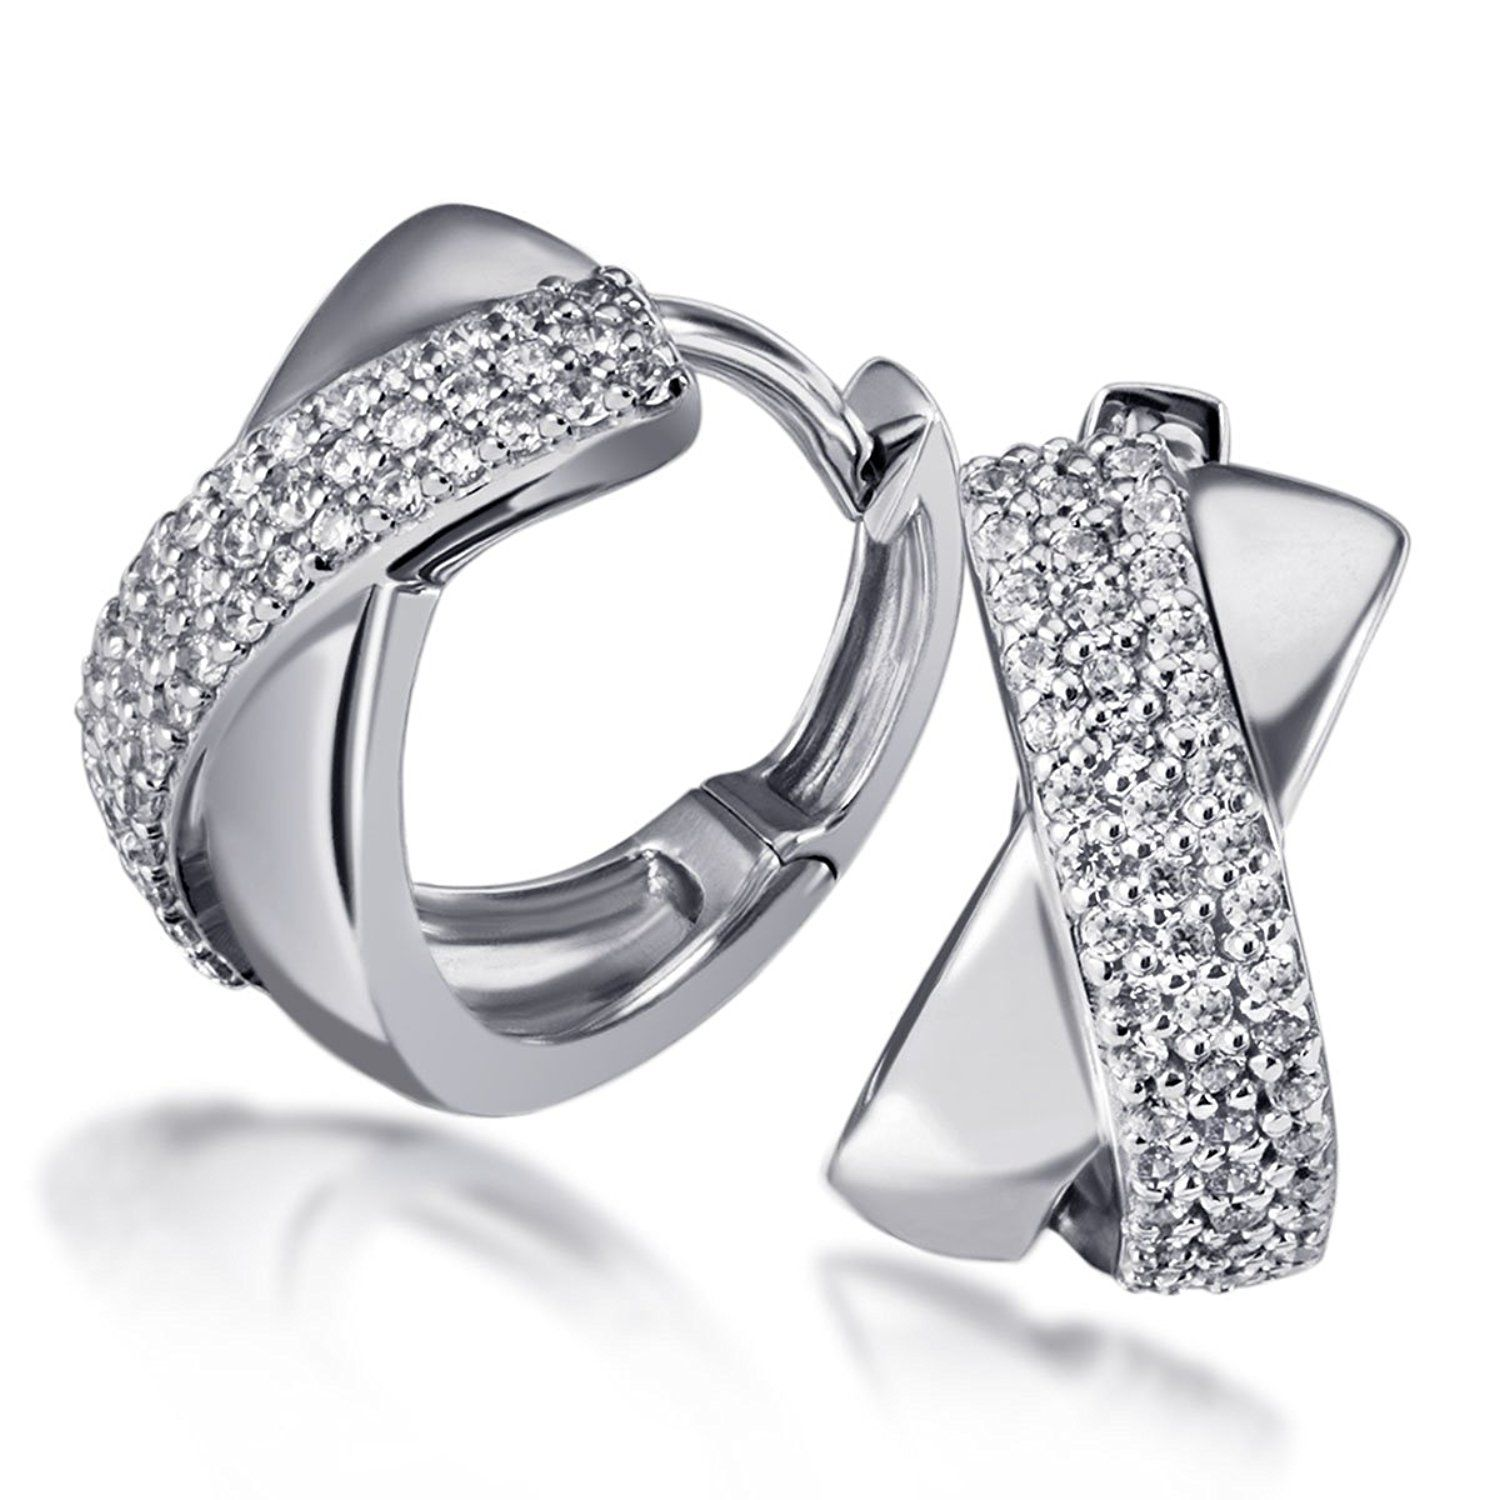 Goldmaid Women's 925 Sterling Silver Earrings with clear